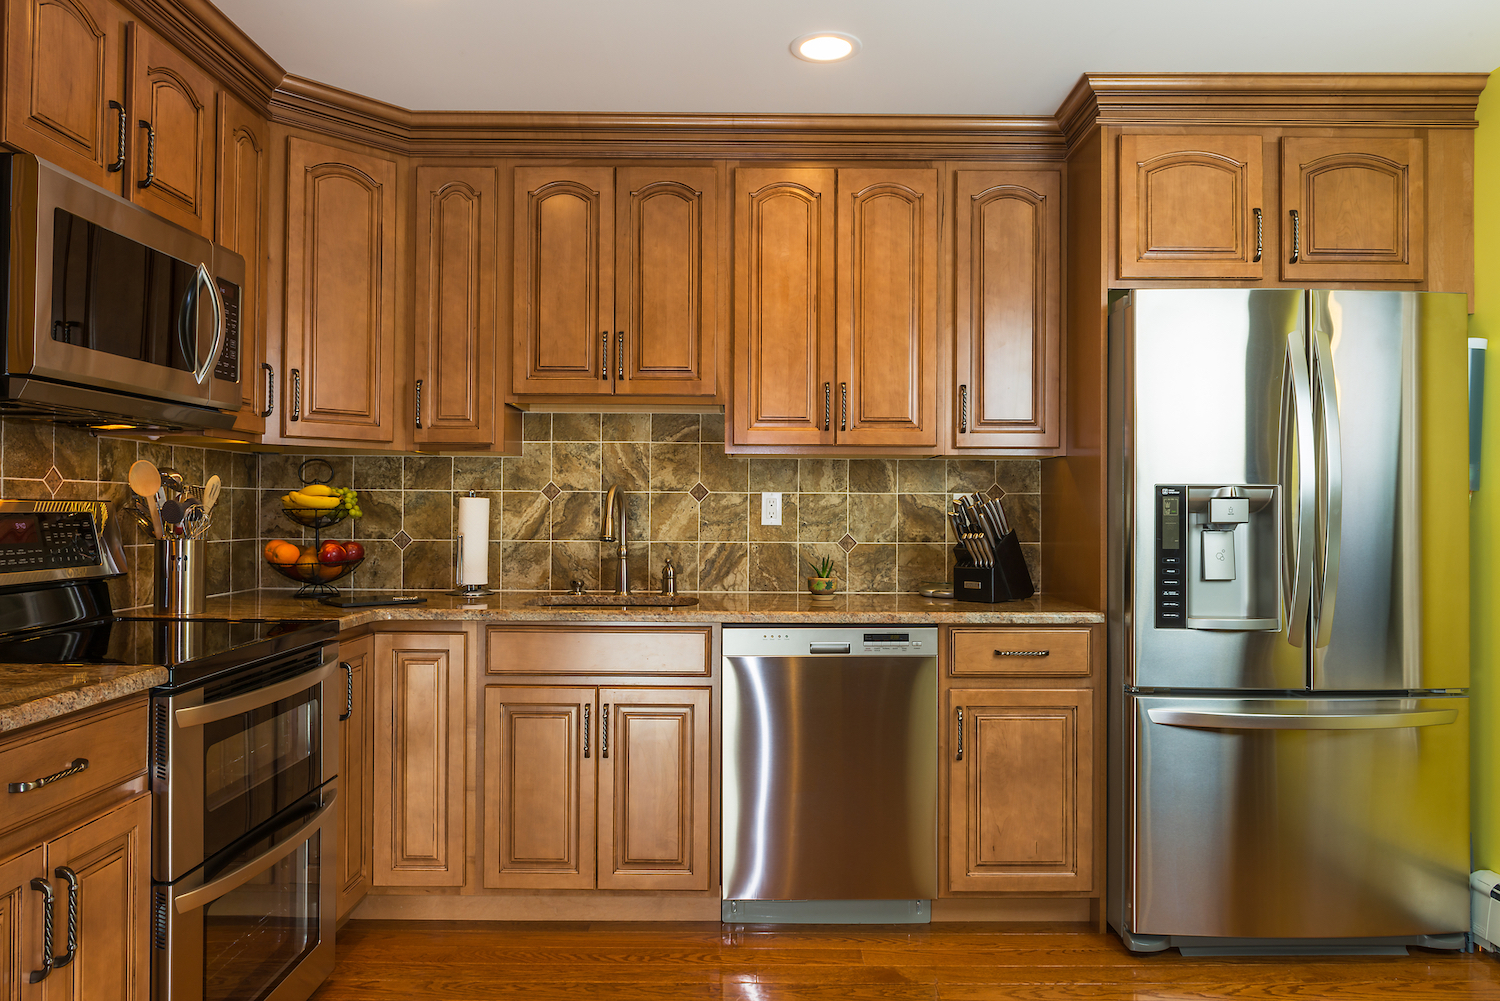 The Strongest Wood for Your Kitchen Cabinet Doors